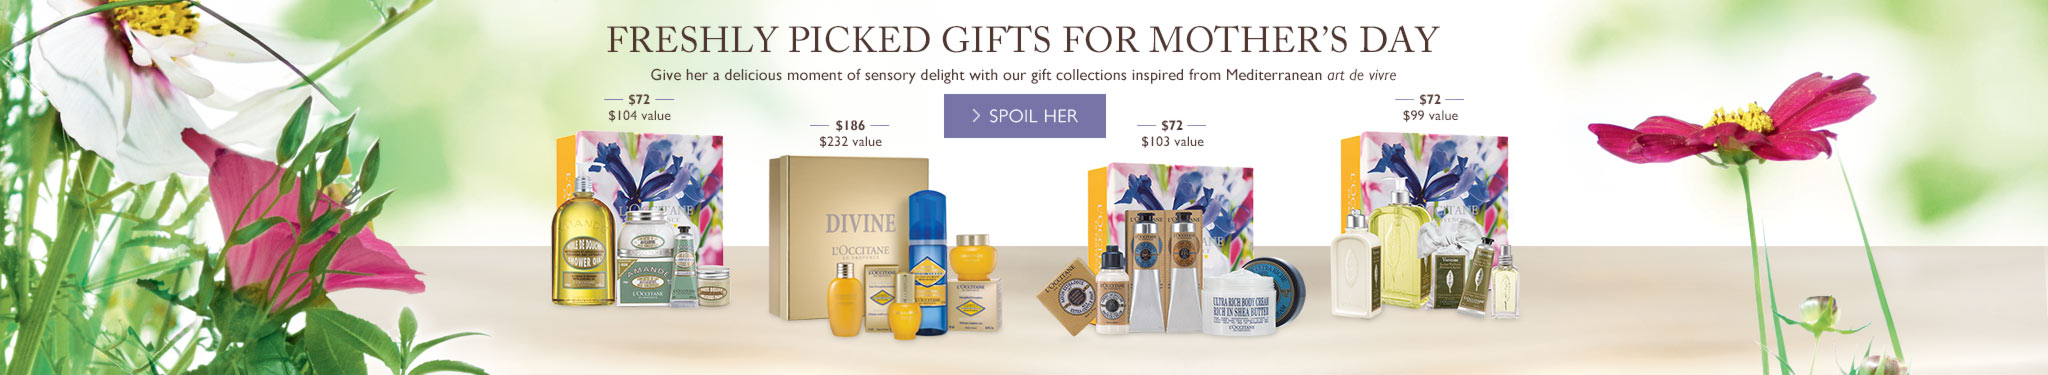 Freshly Picked Gifts for Mother's Day